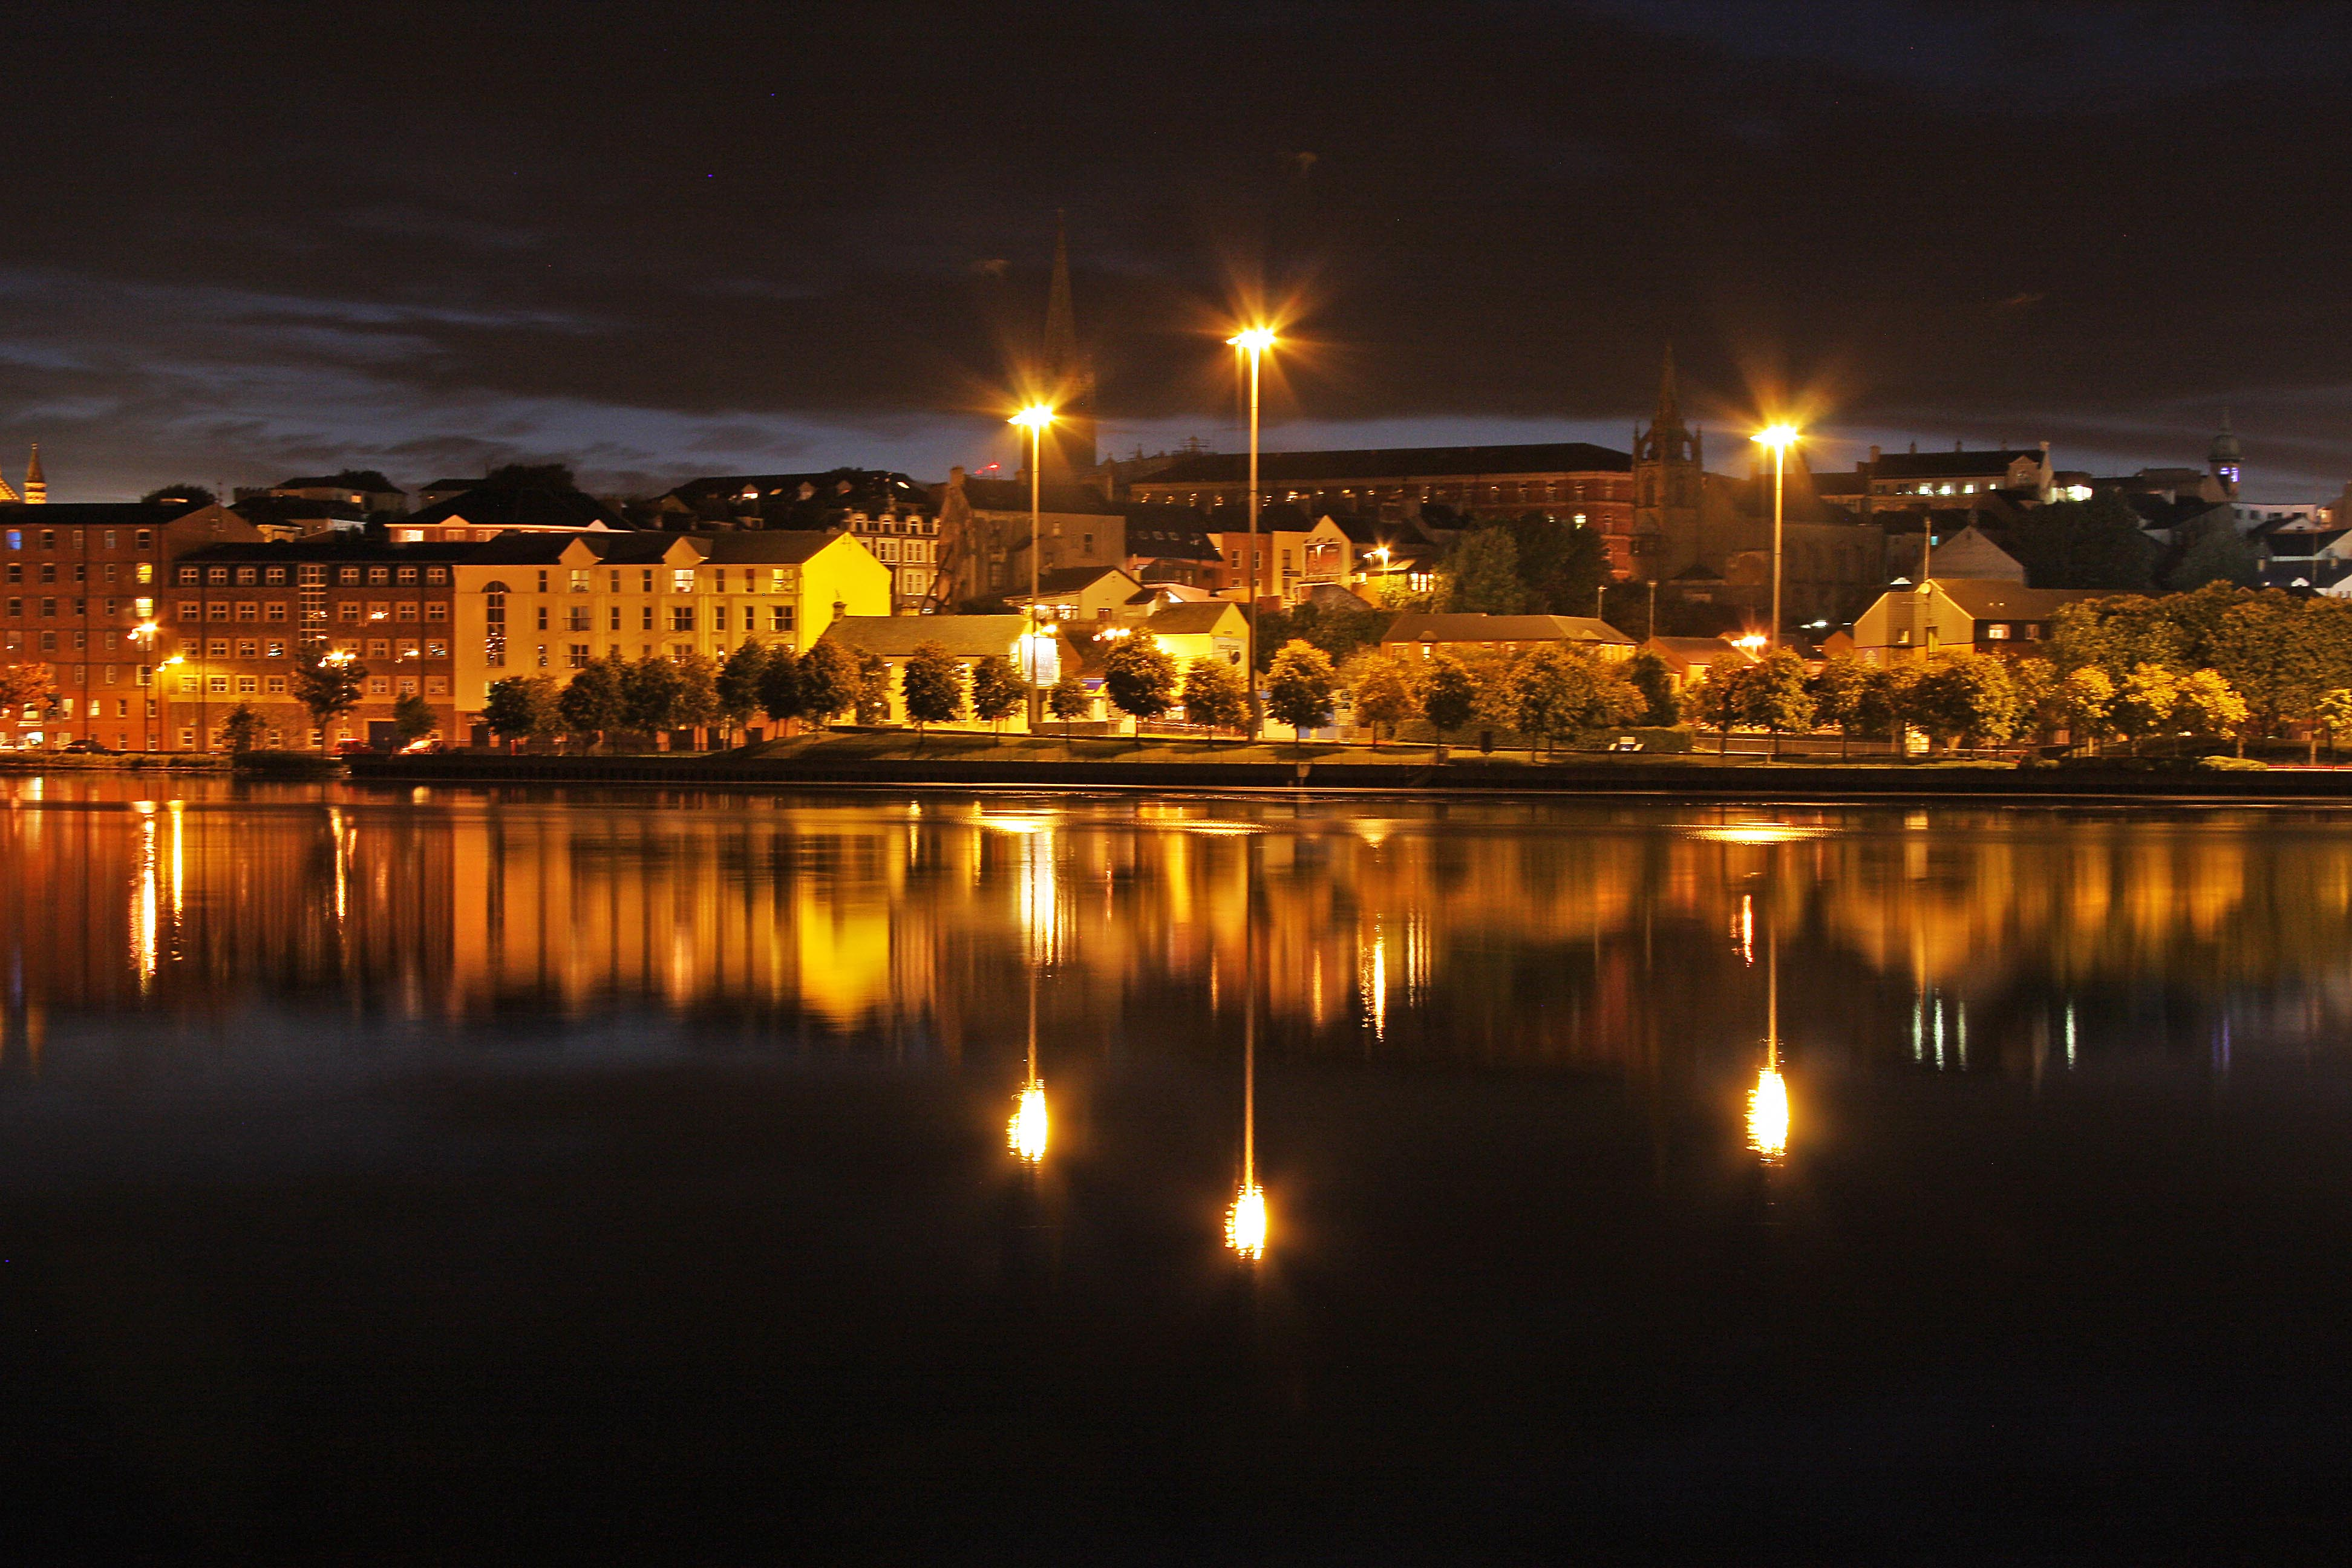 River Foyle, Derry, N Ireland.